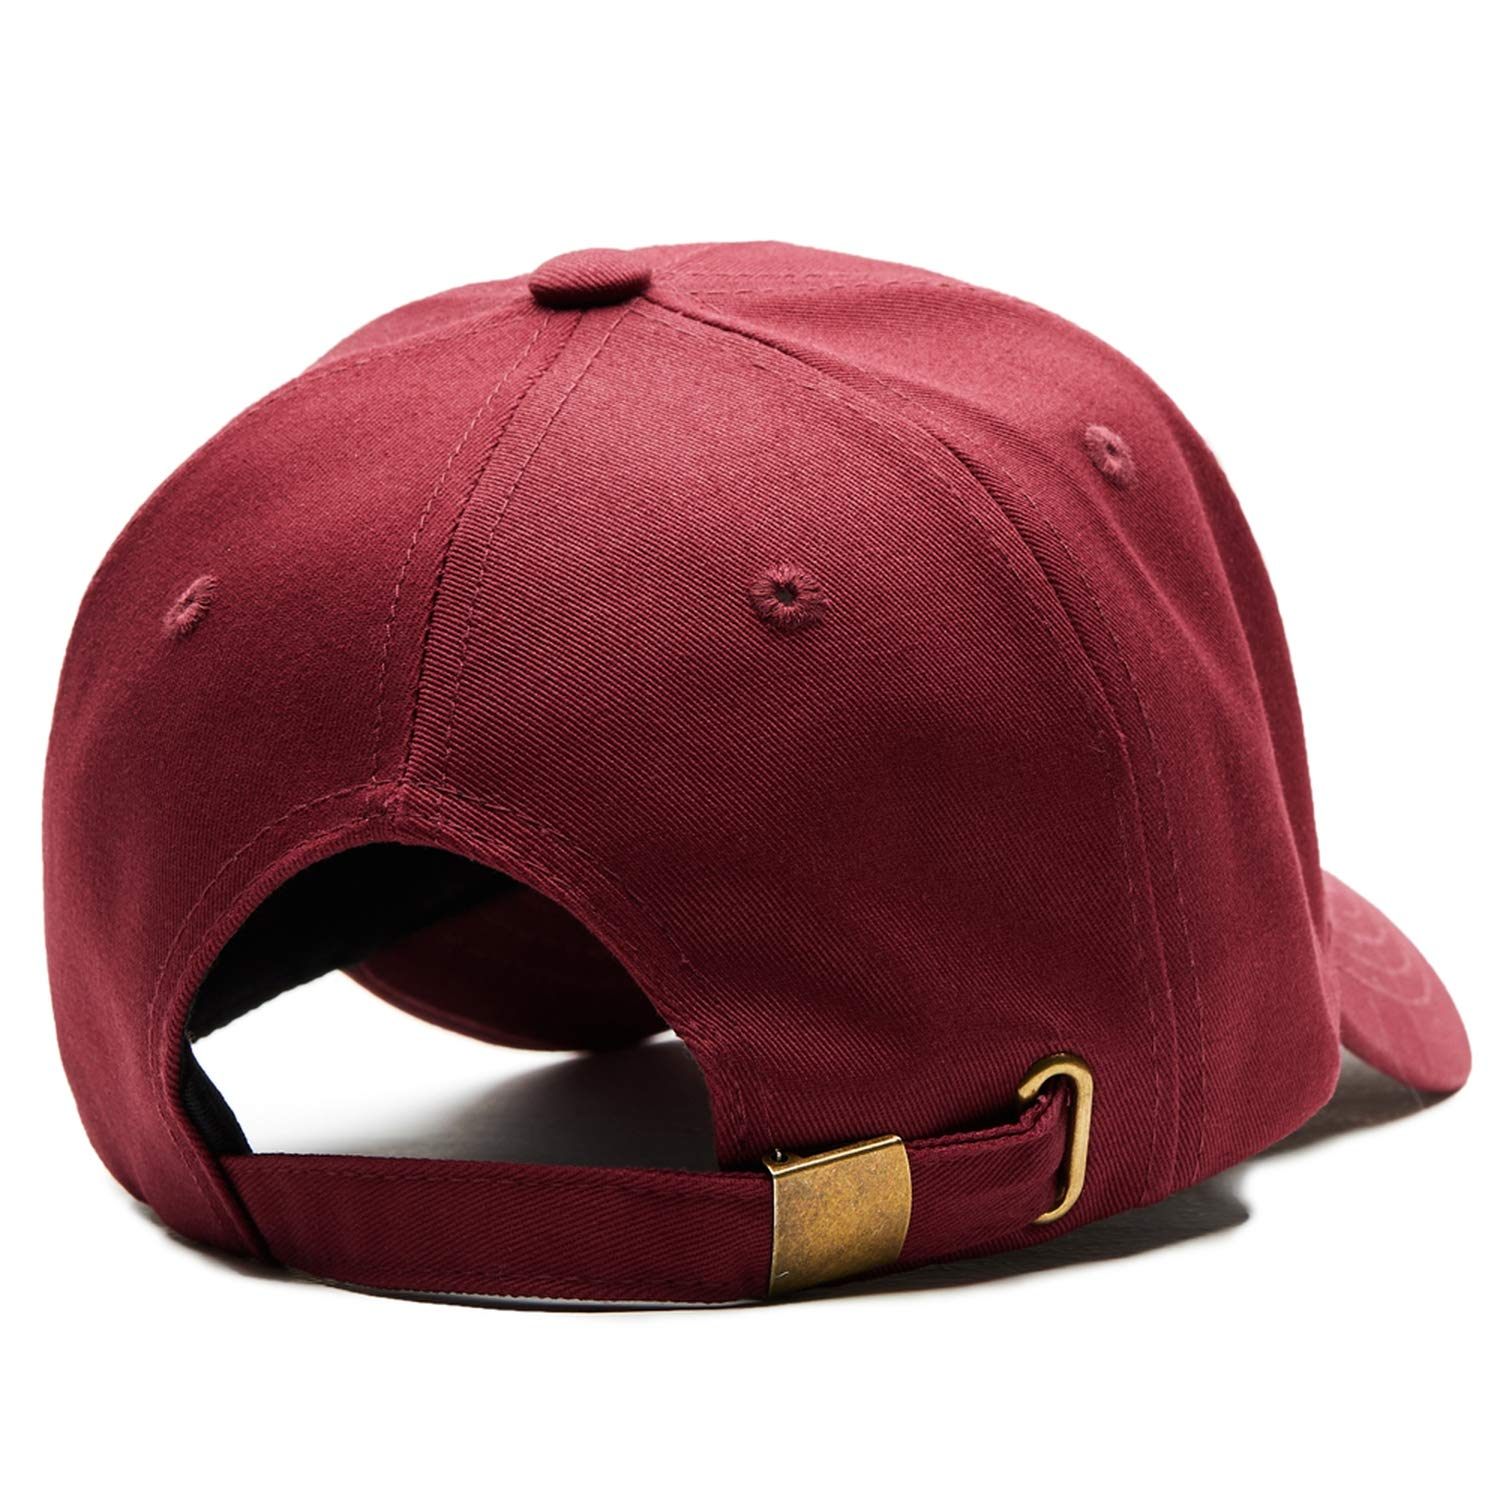 Baseball Cap Dad Hat Baseball Hat Red Solid Outdoor Sports Male Female Cotton Ventilate Caps for Men Women